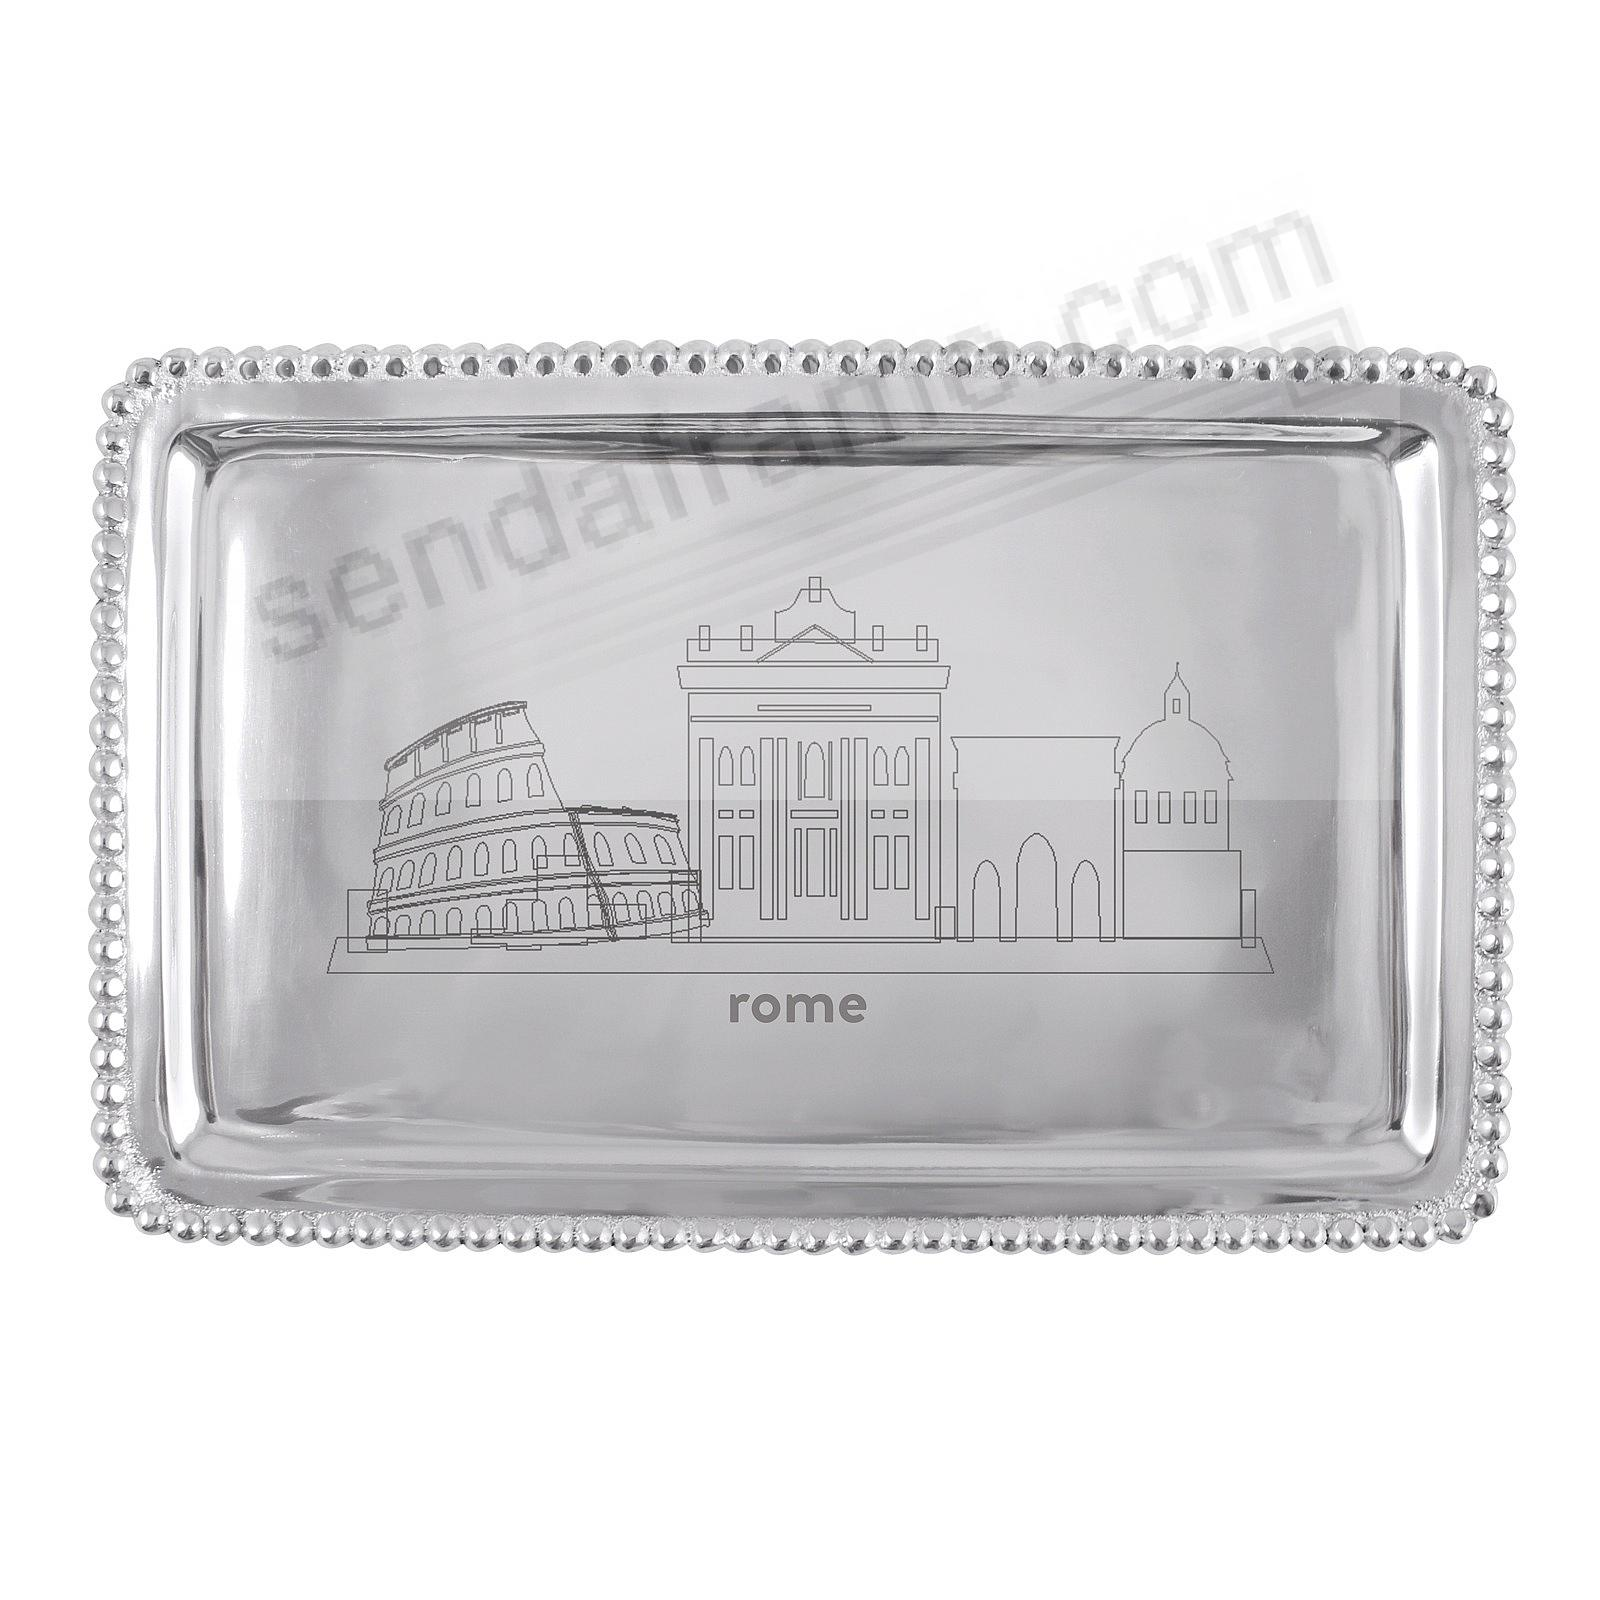 The ROME-ITALY CITYSCAPE BEADED BUFFET TRAY crafted by Mariposa®